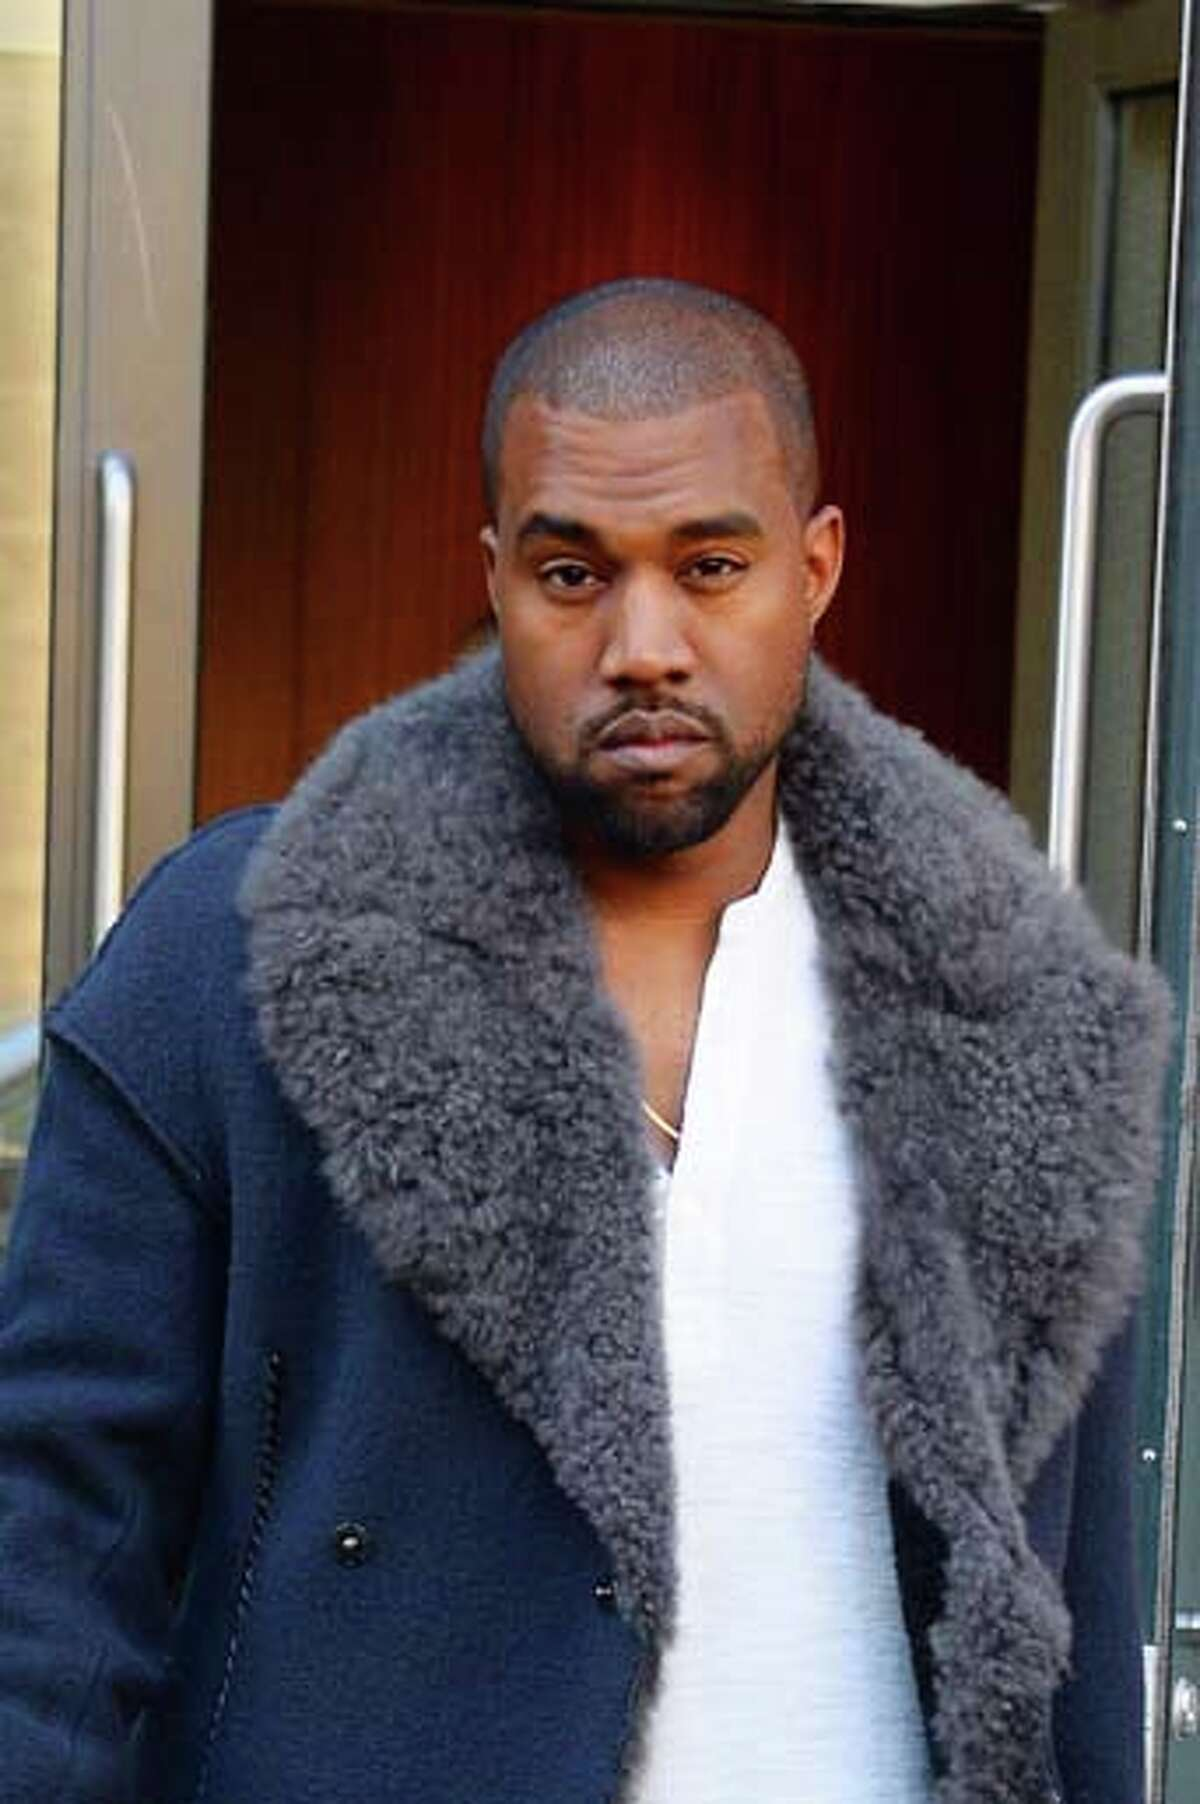 Kanye West is rounding out this year by dissing the leader of the free world.